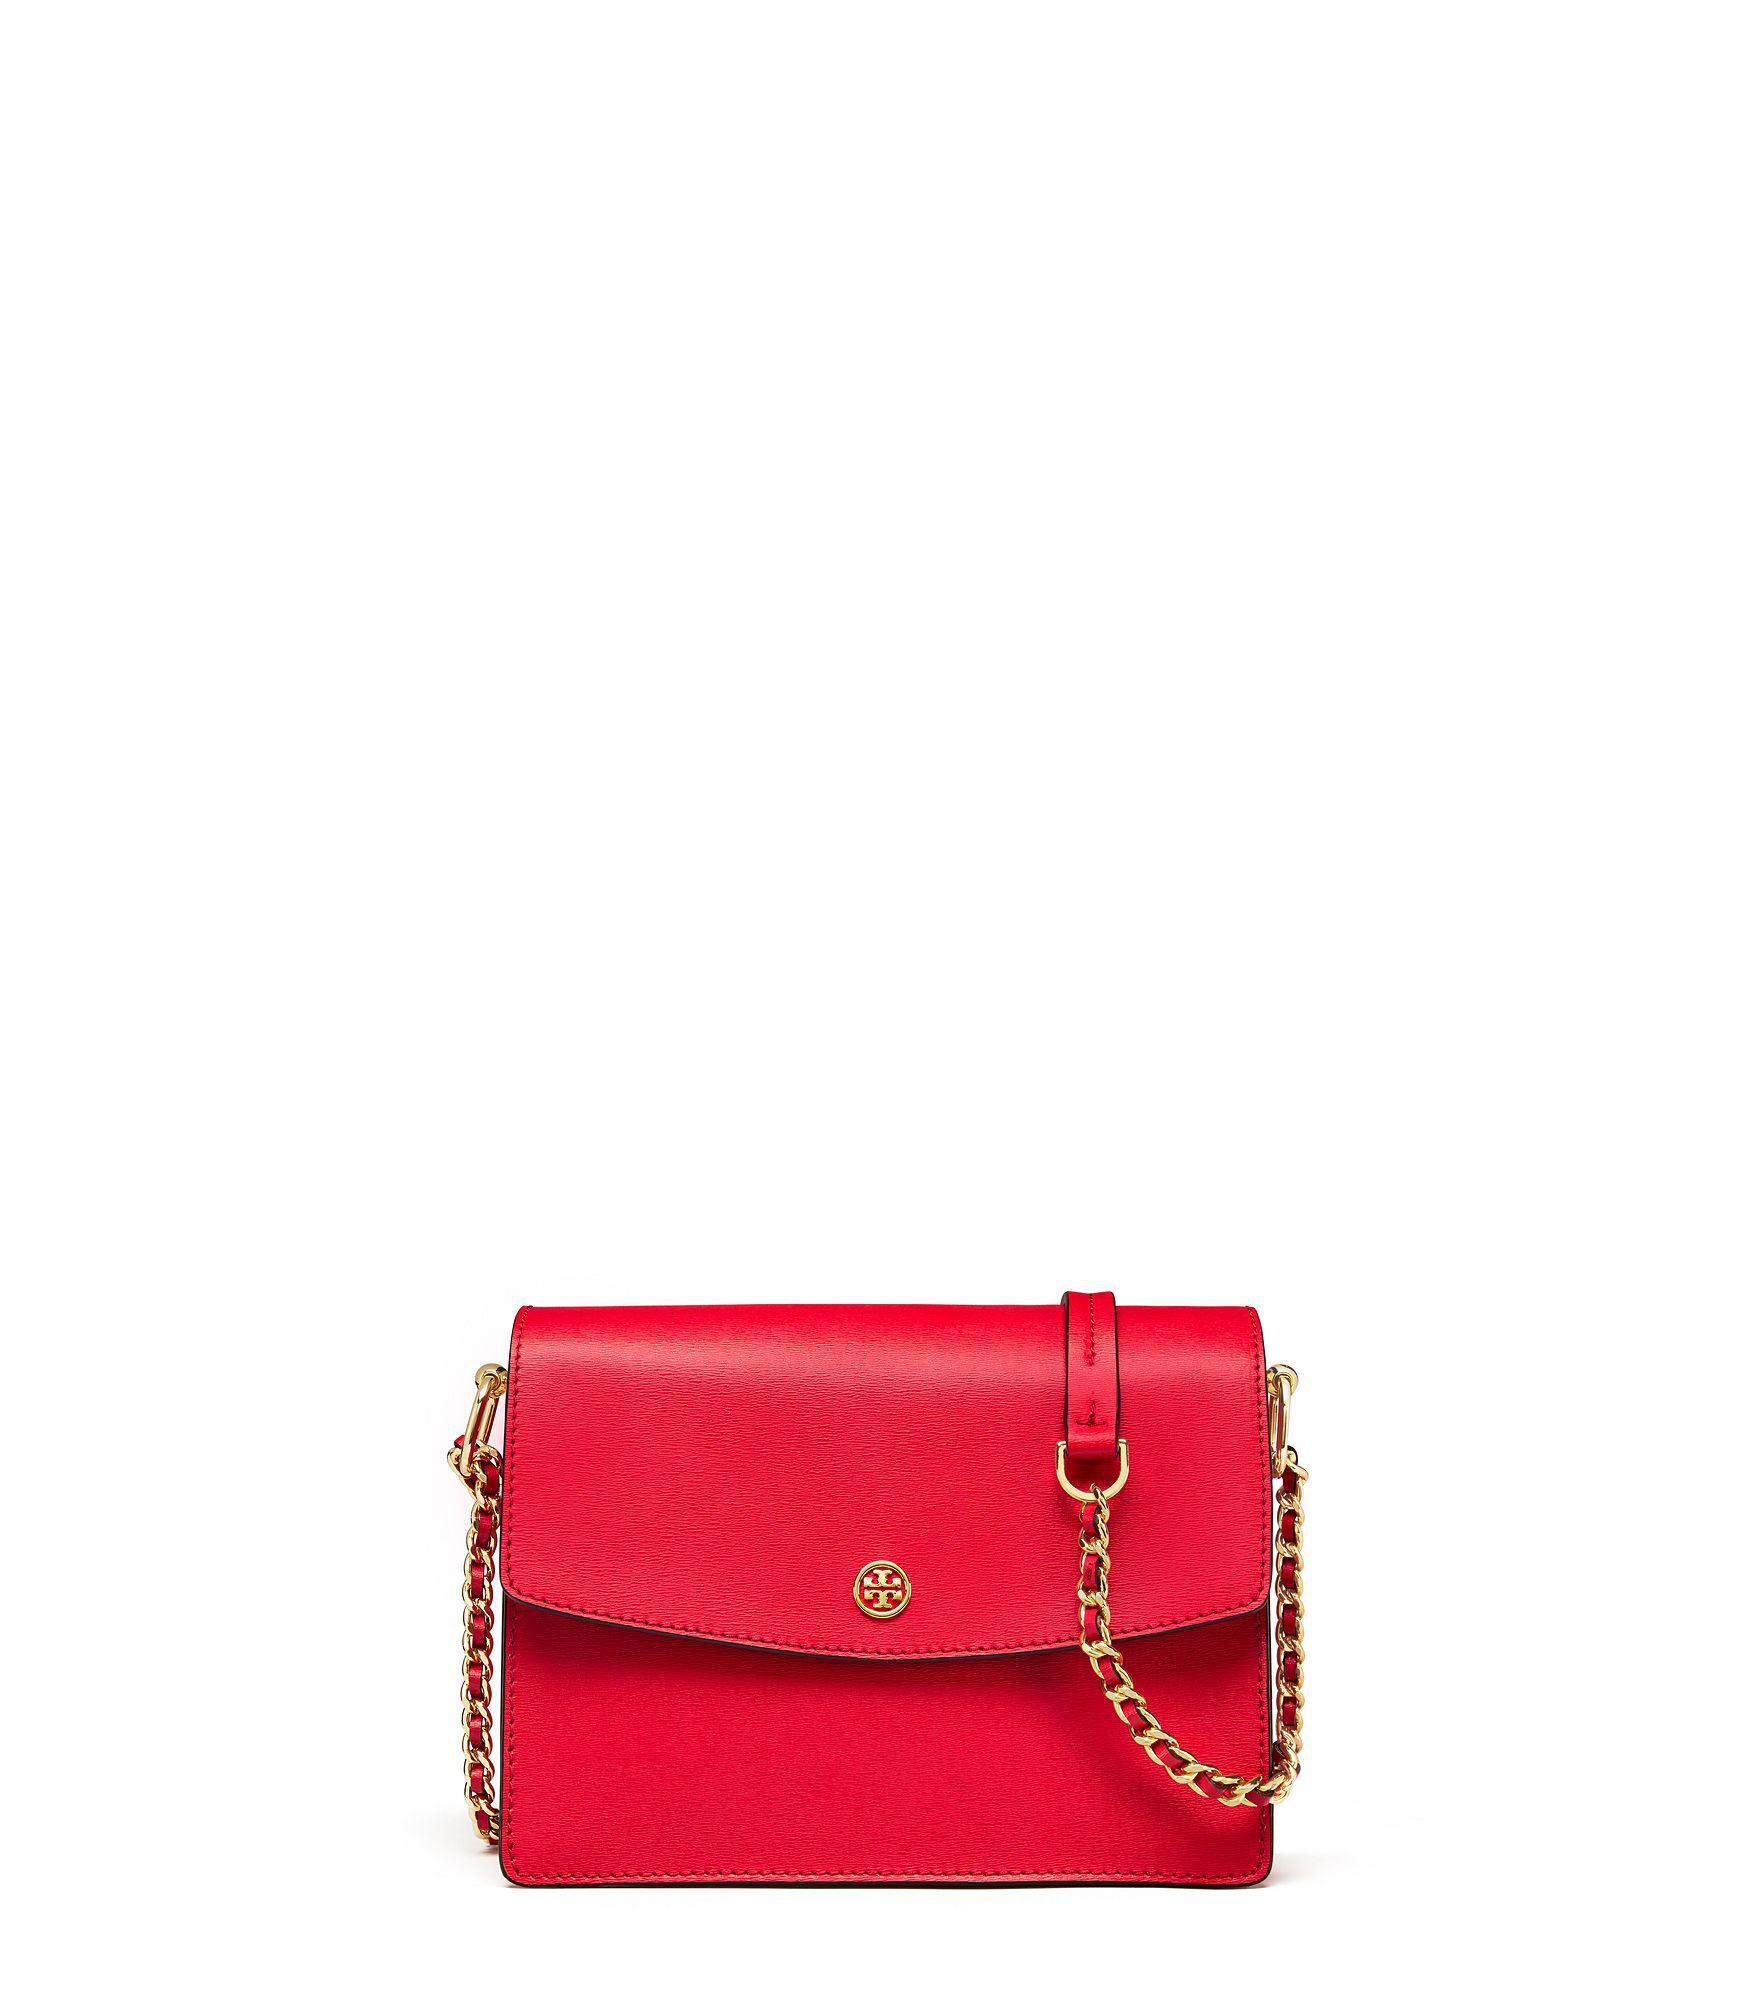 243238724 Tory Burch Parker Convertible Shoulder Bag in Red - Lyst